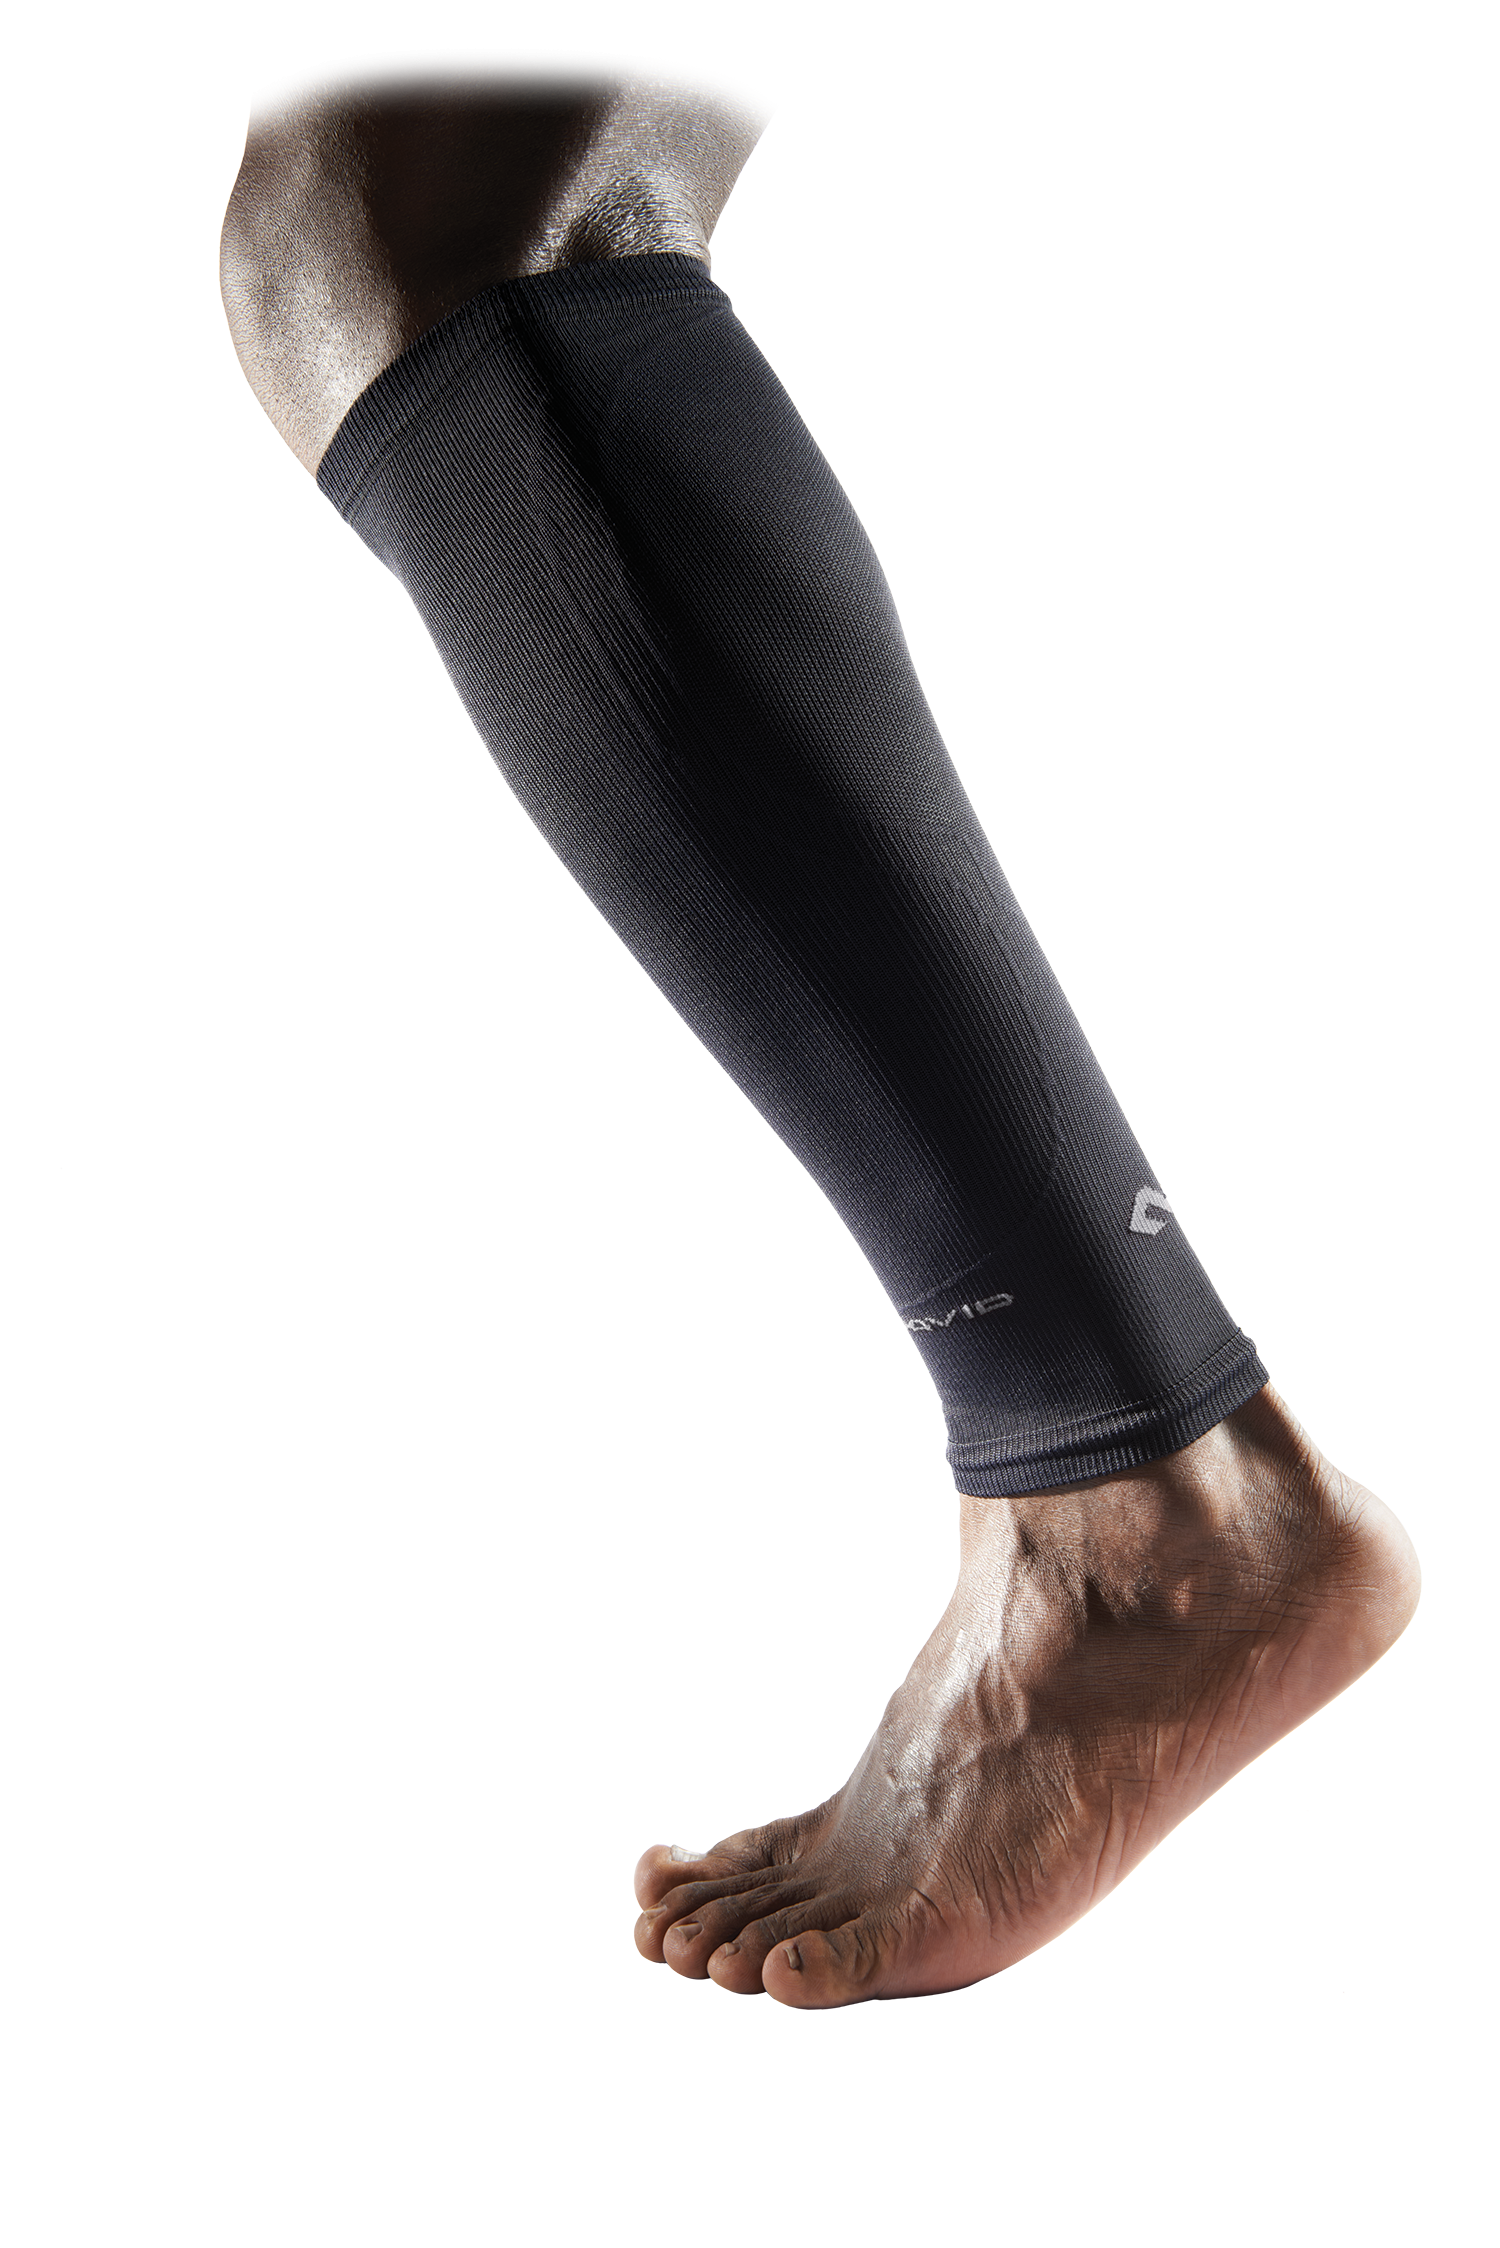 McDavid Elite Compression Sleeves 8846